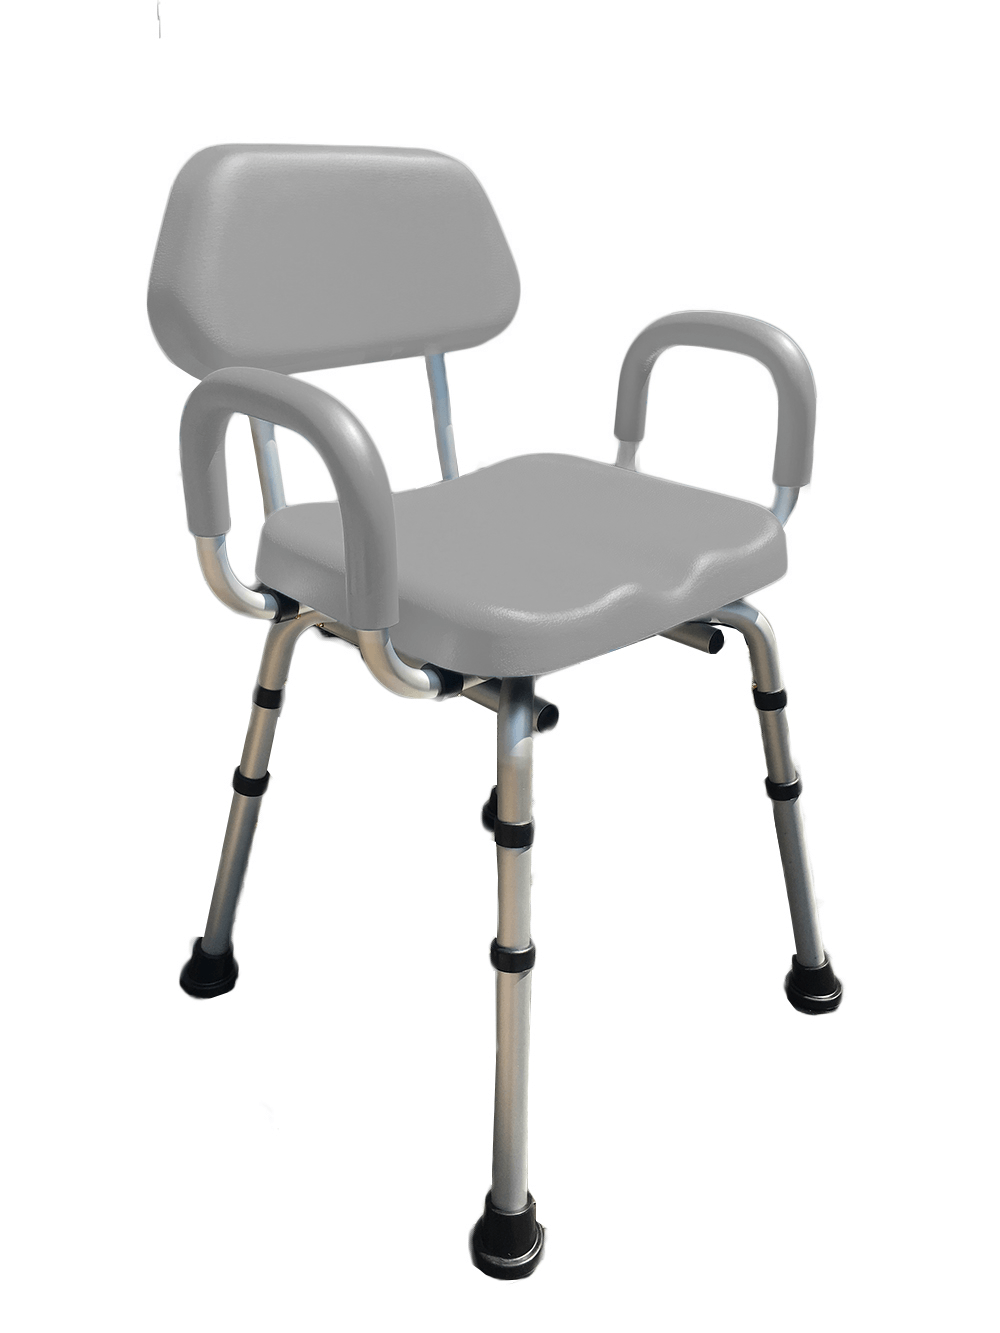 COMFORTABLE(TM) DELUXE BATH / SHOWER CHAIR - PADDED WITH ARMRESTS Grey